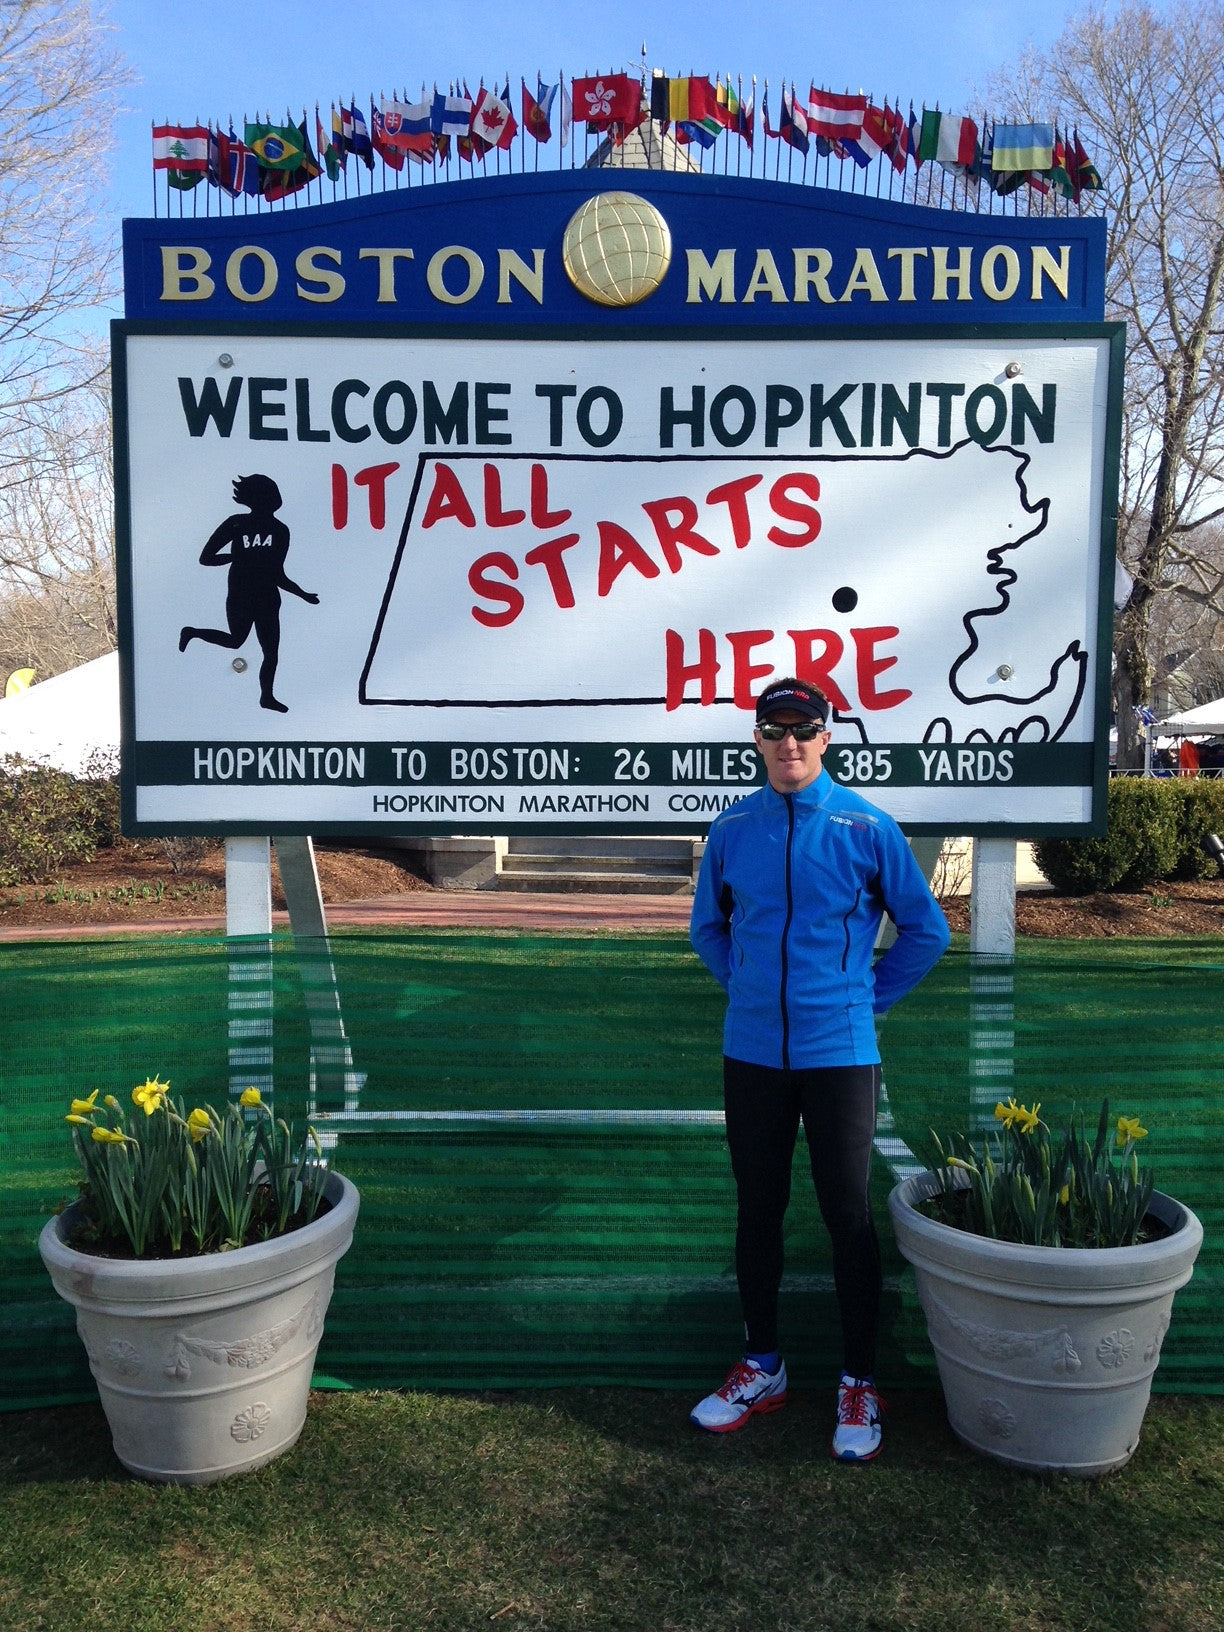 The Boston Marathon Lie